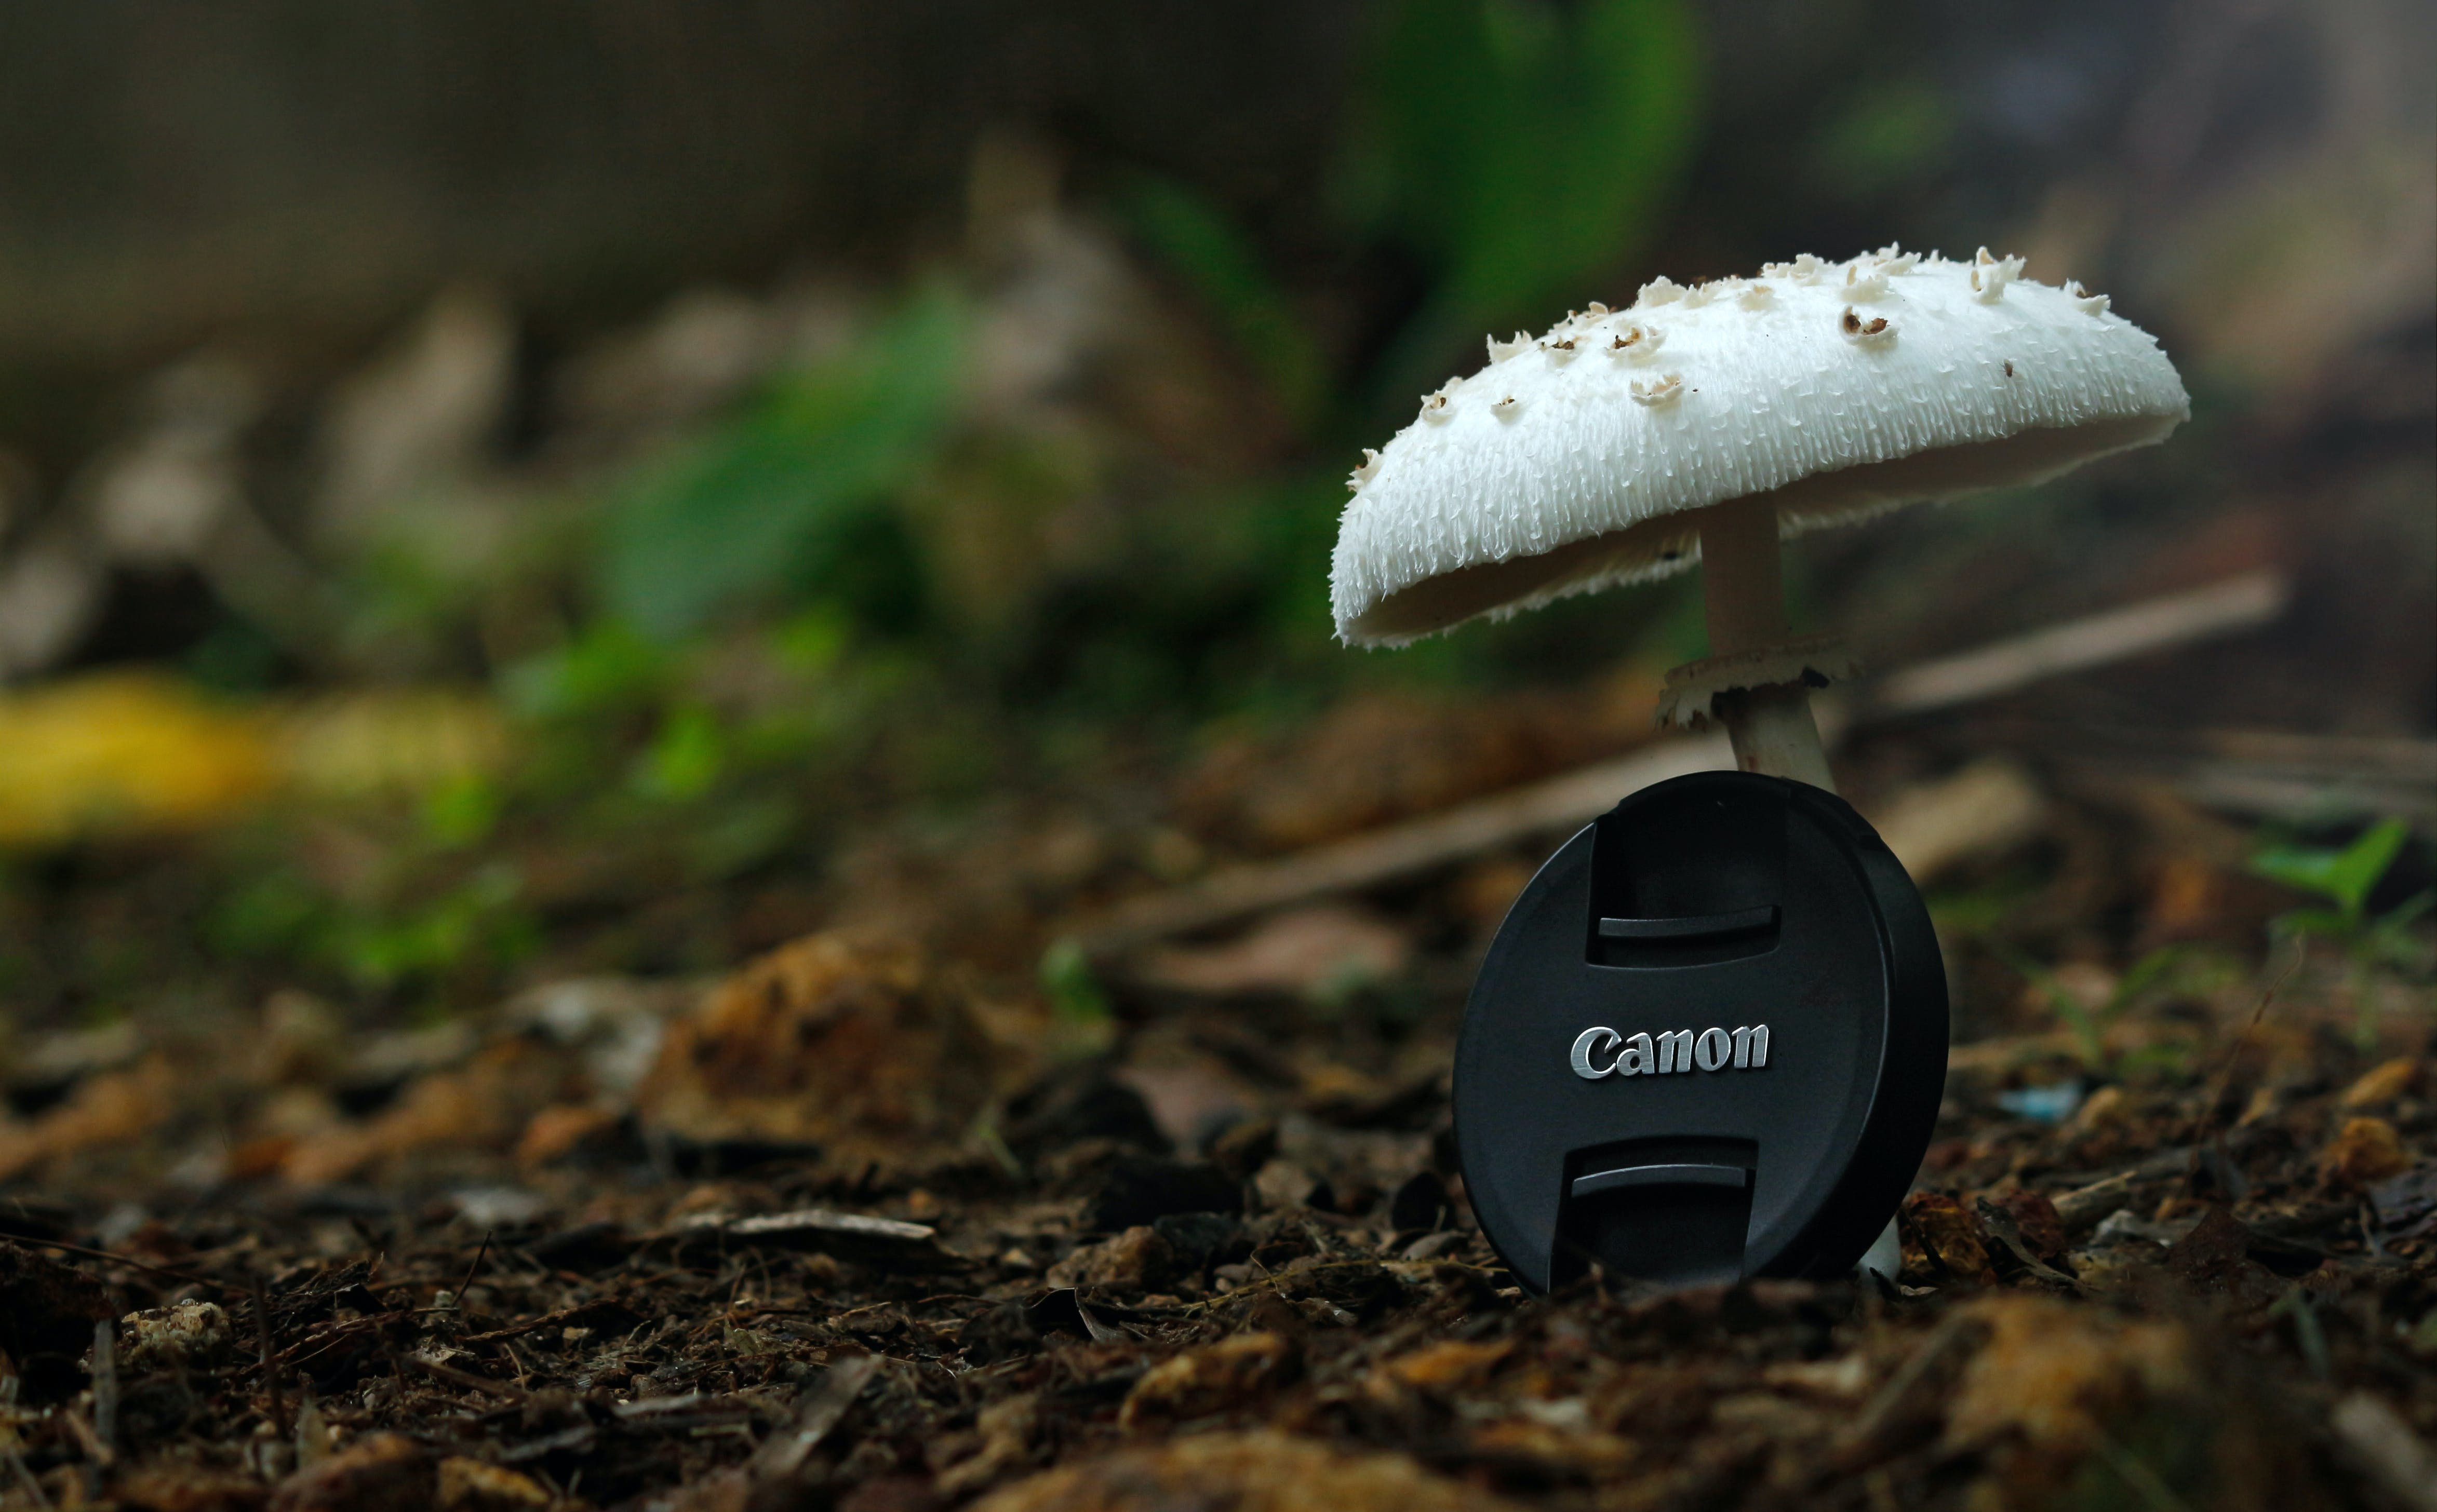 White Button Mushroom With Black Canon Camera Zoom Lens Cover